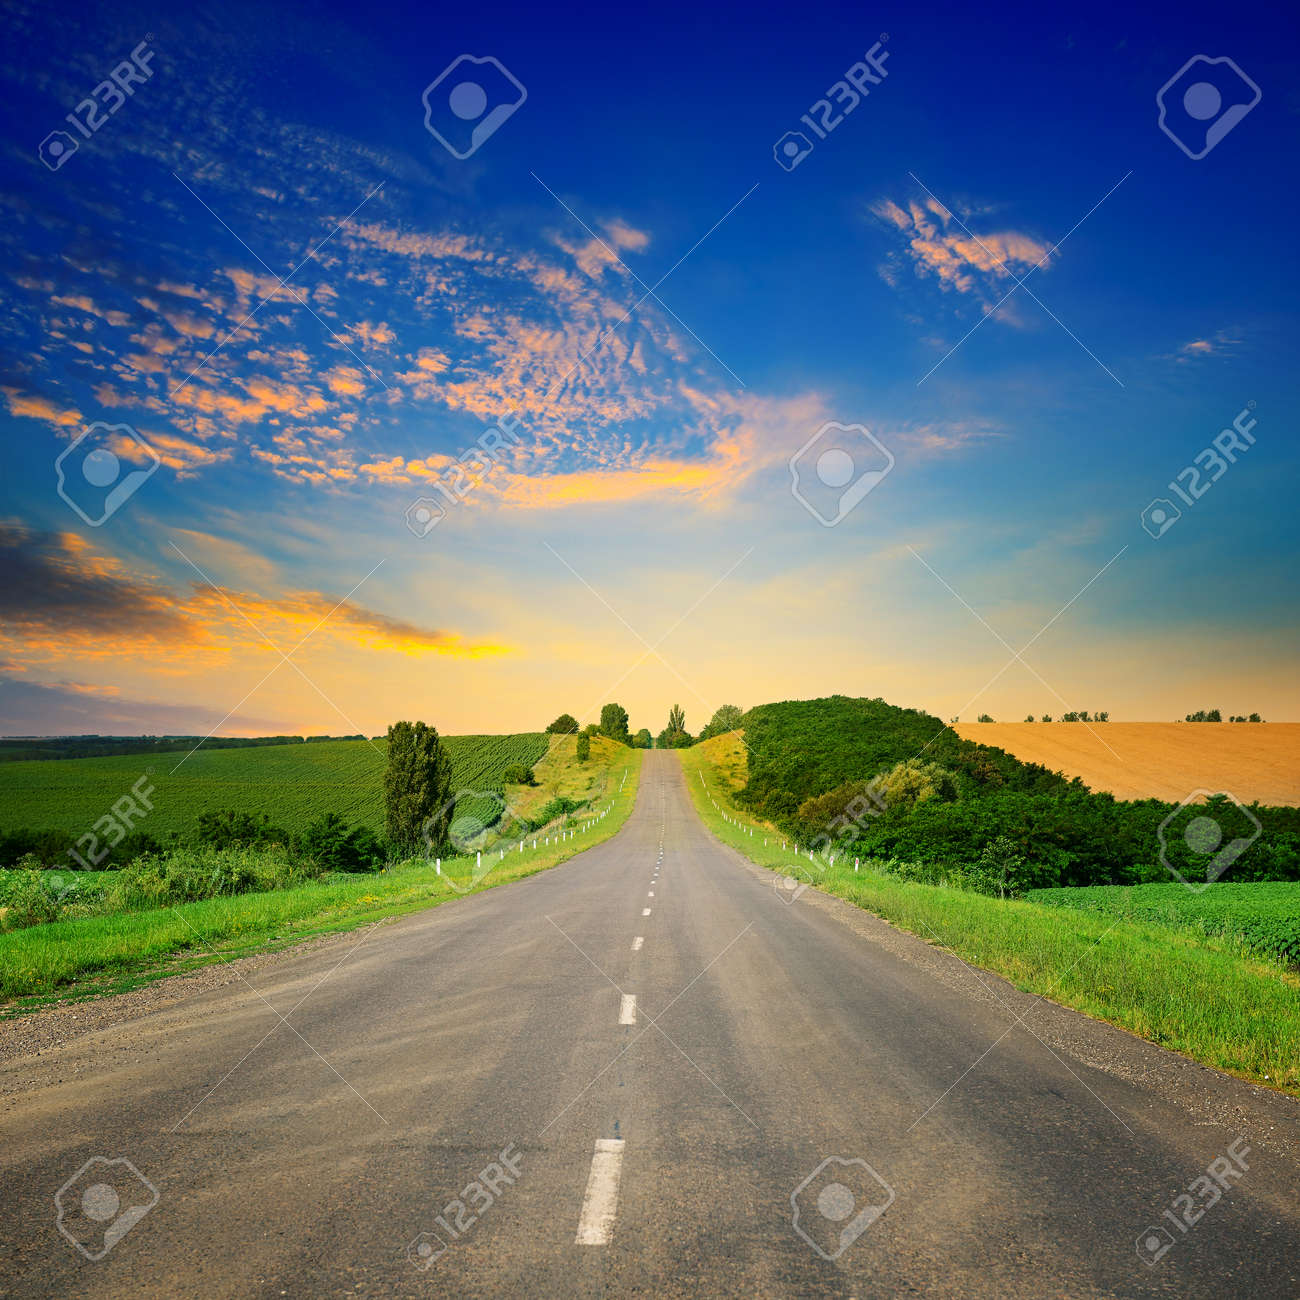 Sunrise over picturesque landscape. Straight road and fields illuminated rays sun. - 128112700